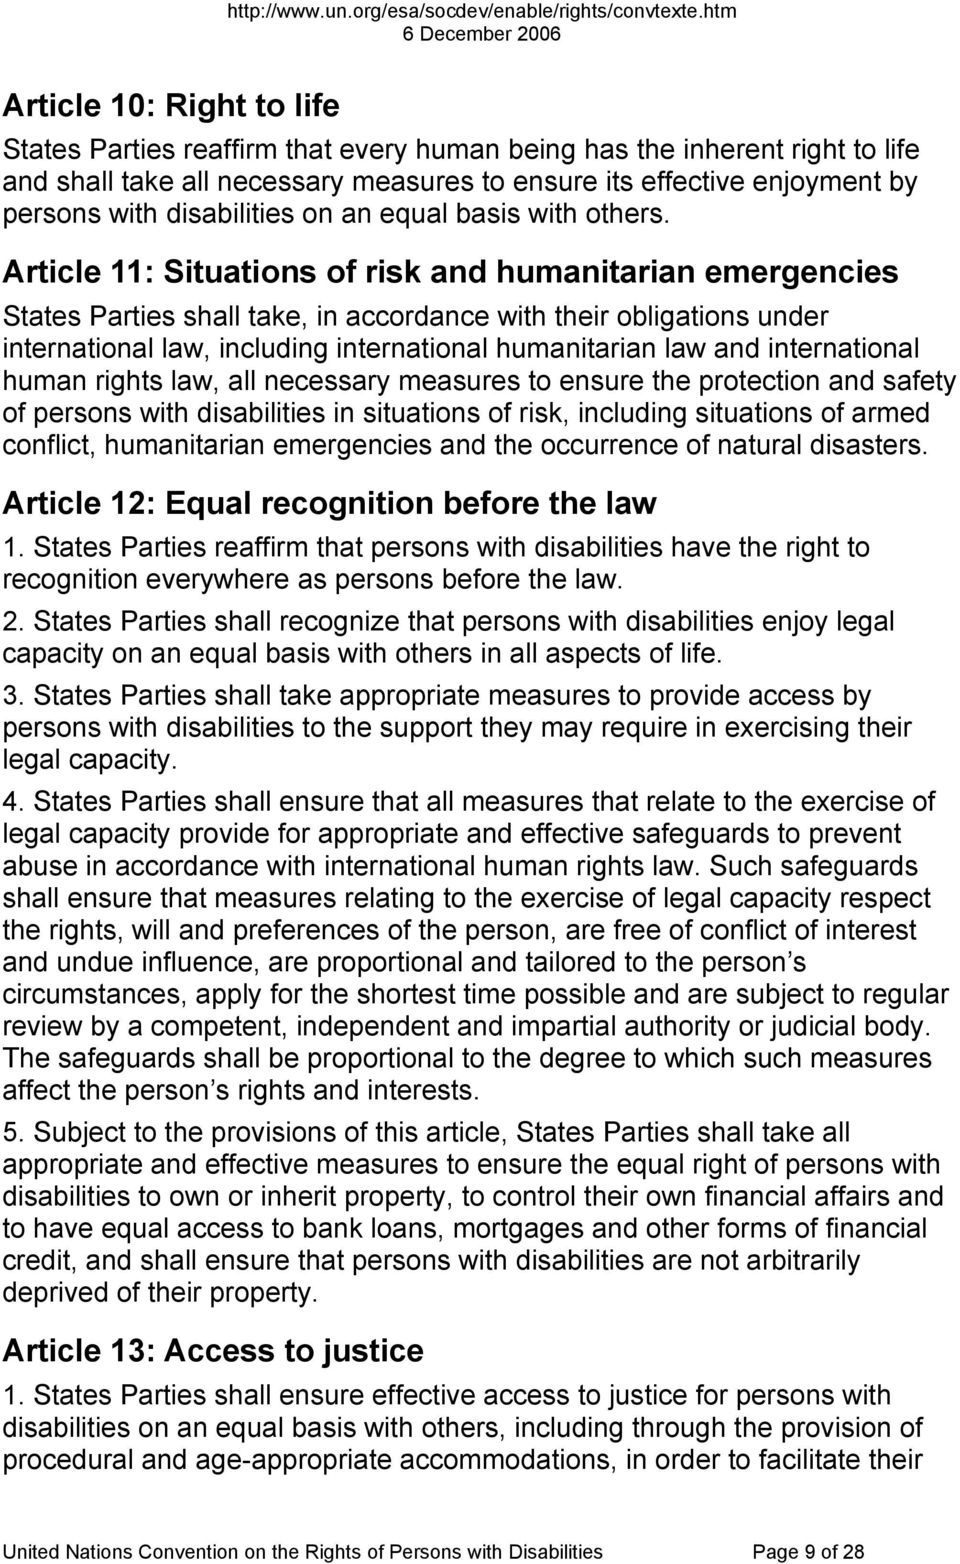 Article 11: Situations of risk and humanitarian emergencies States Parties shall take, in accordance with their obligations under international law, including international humanitarian law and